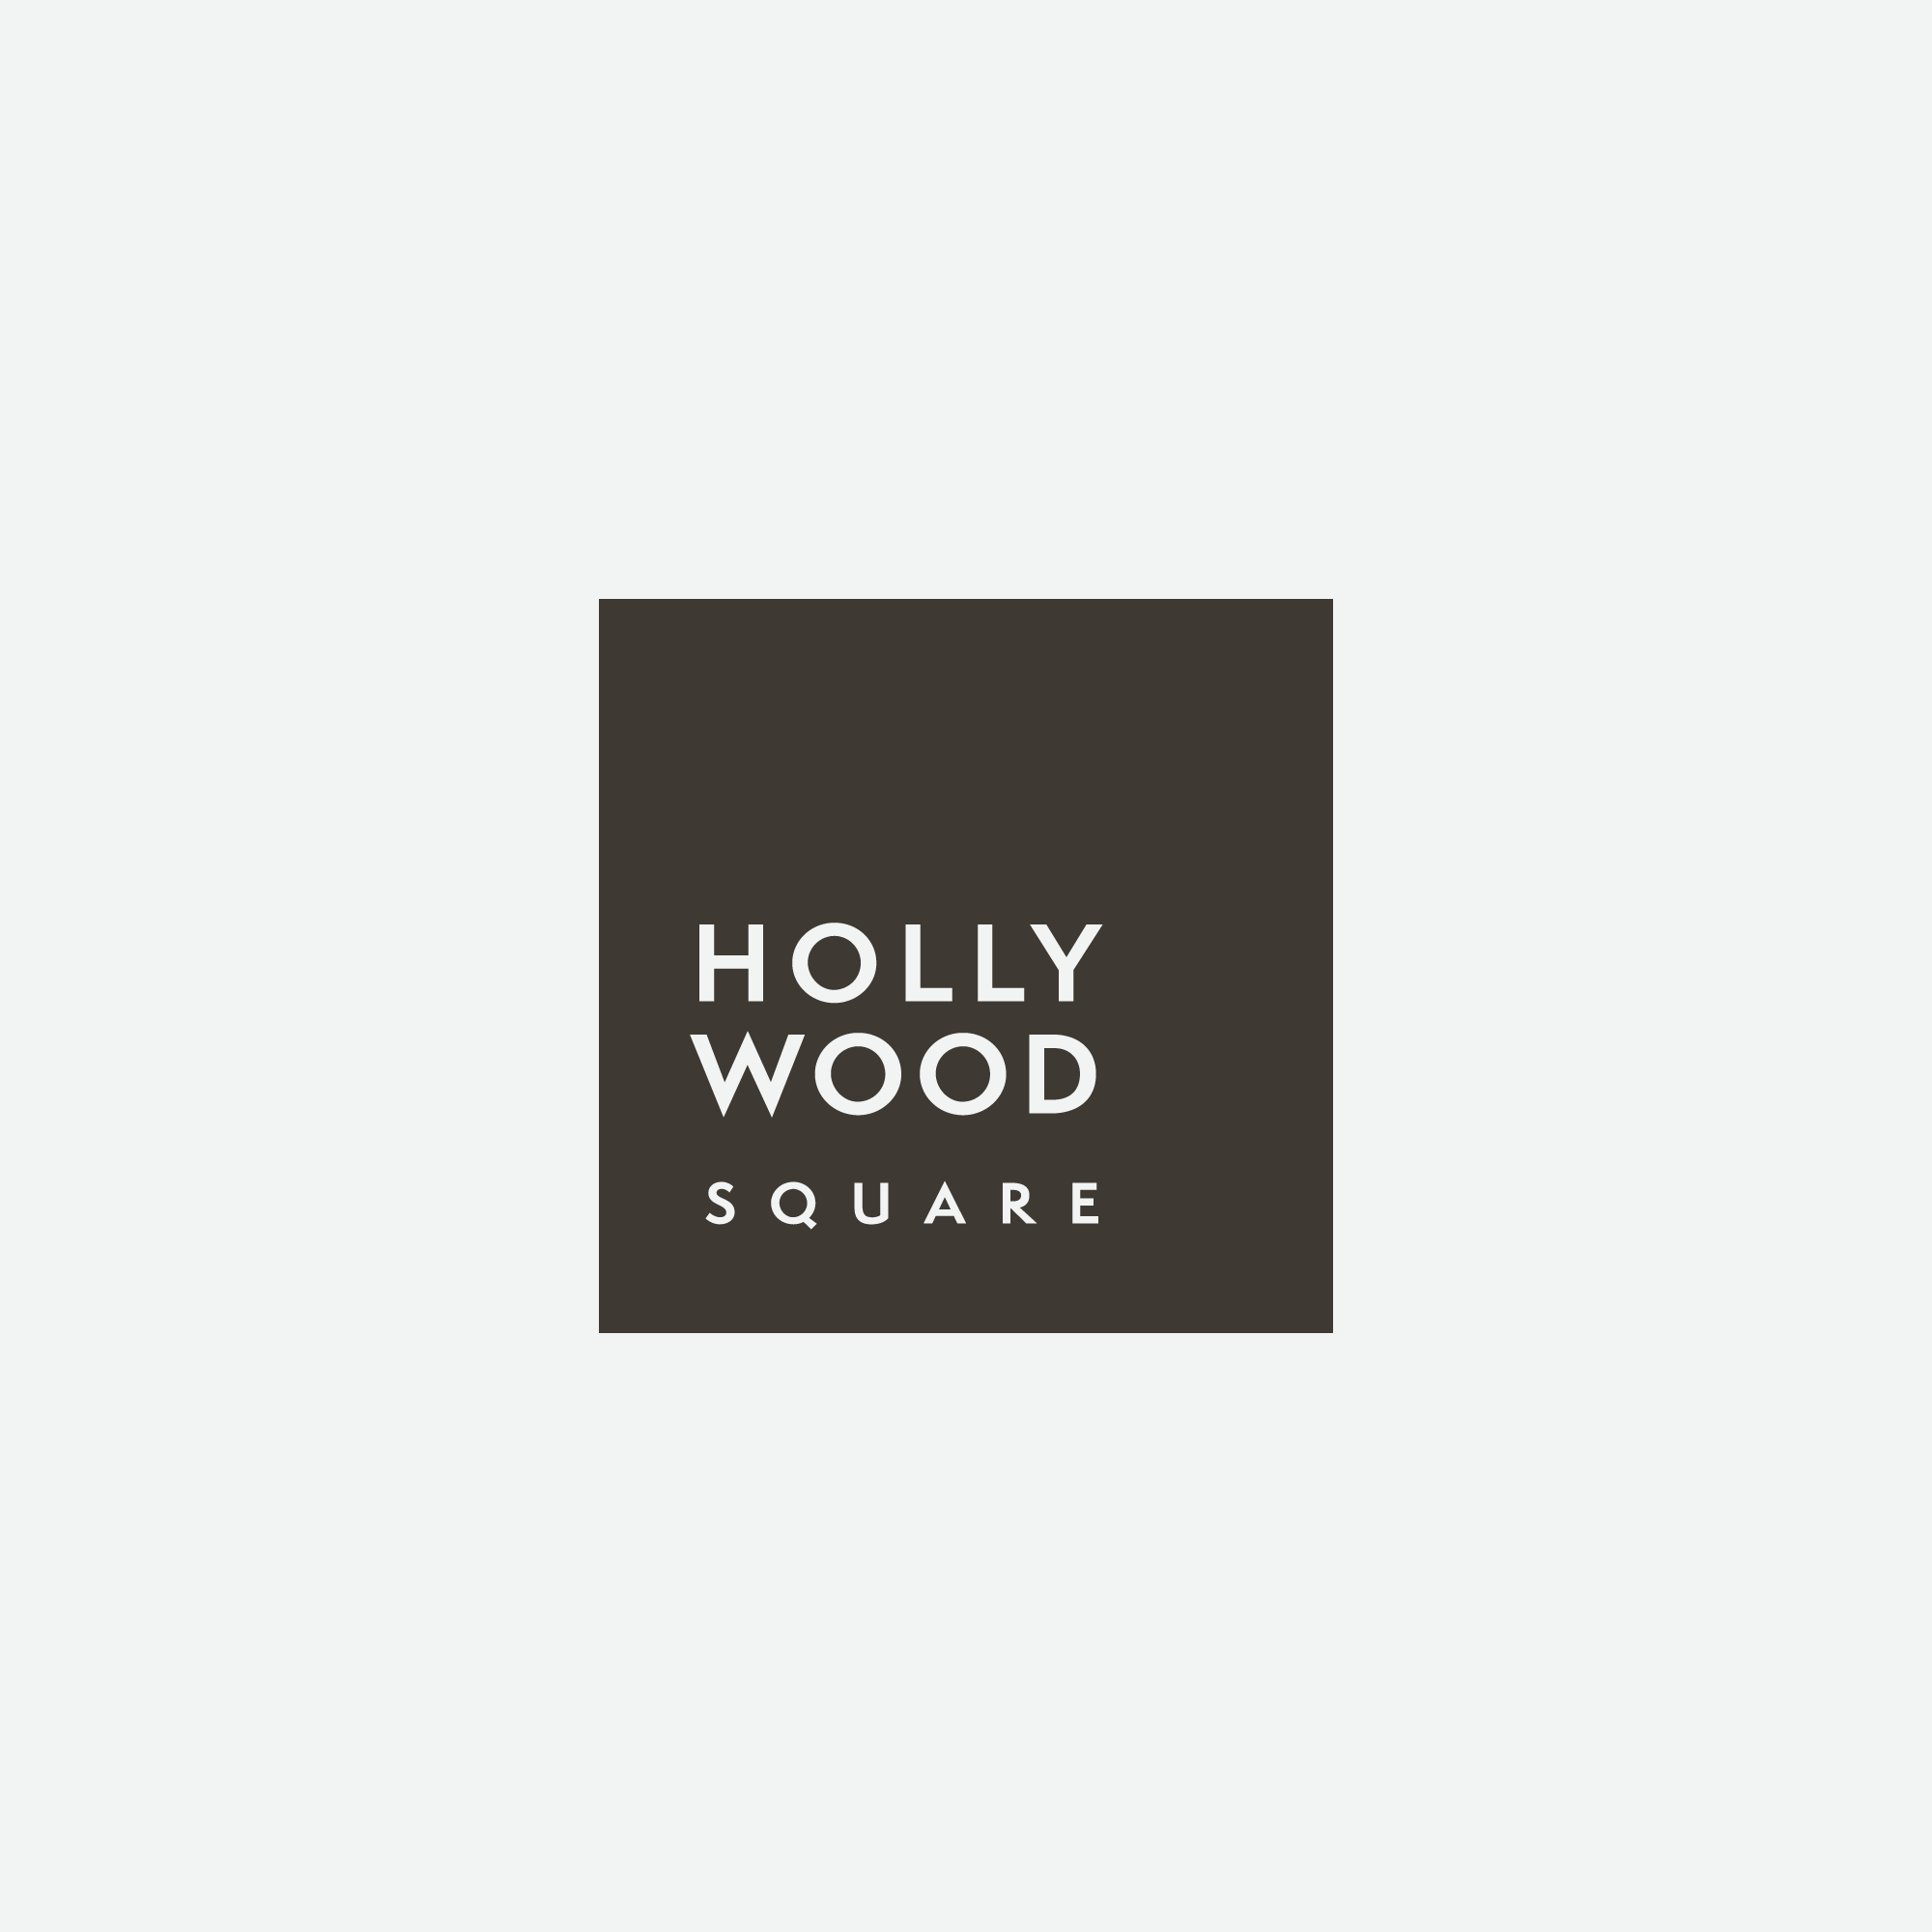 Hollywood Square